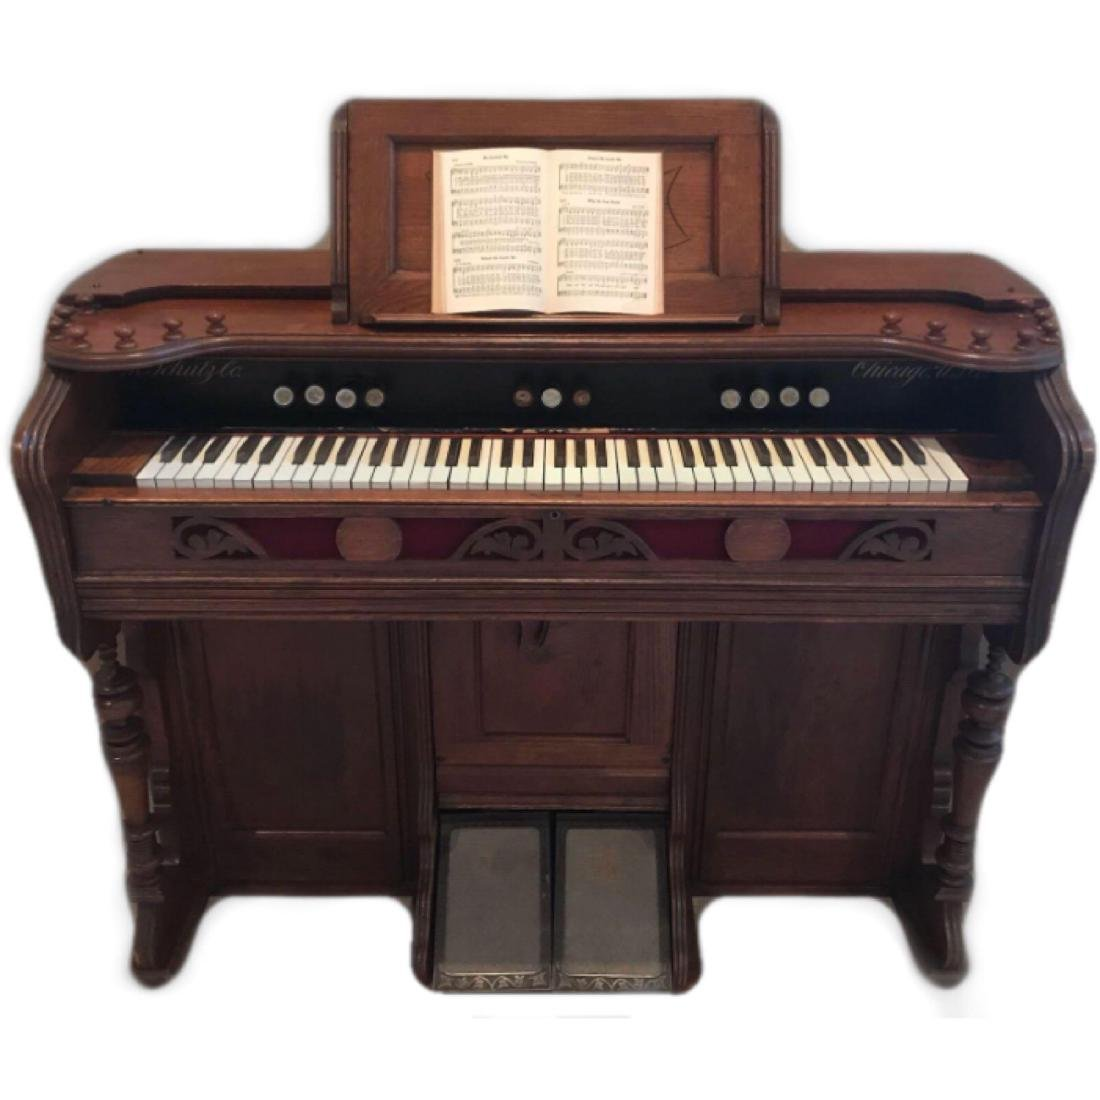 M. Schulz Co. Chicago, USA, Pump Organ